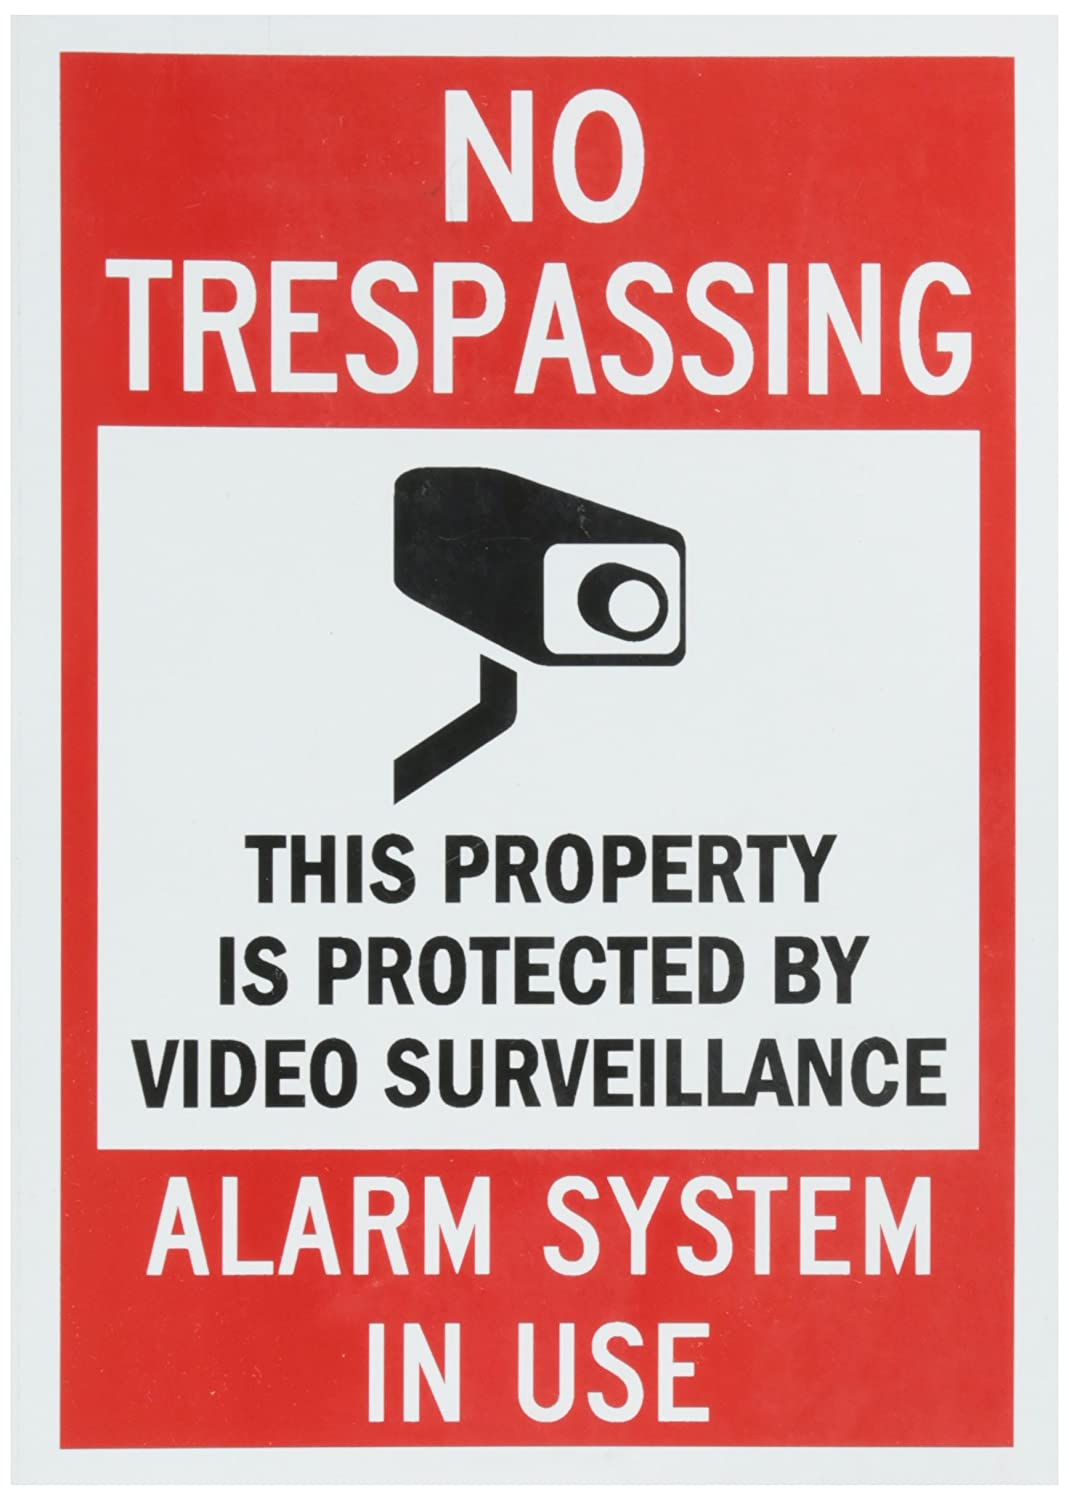 SmartSign Adhesive Vinyl Label, Legend No Trespassing Alarm System In Use with Graphic, 5 high x 3.5 wide, Black/Red on White Lyle Signs